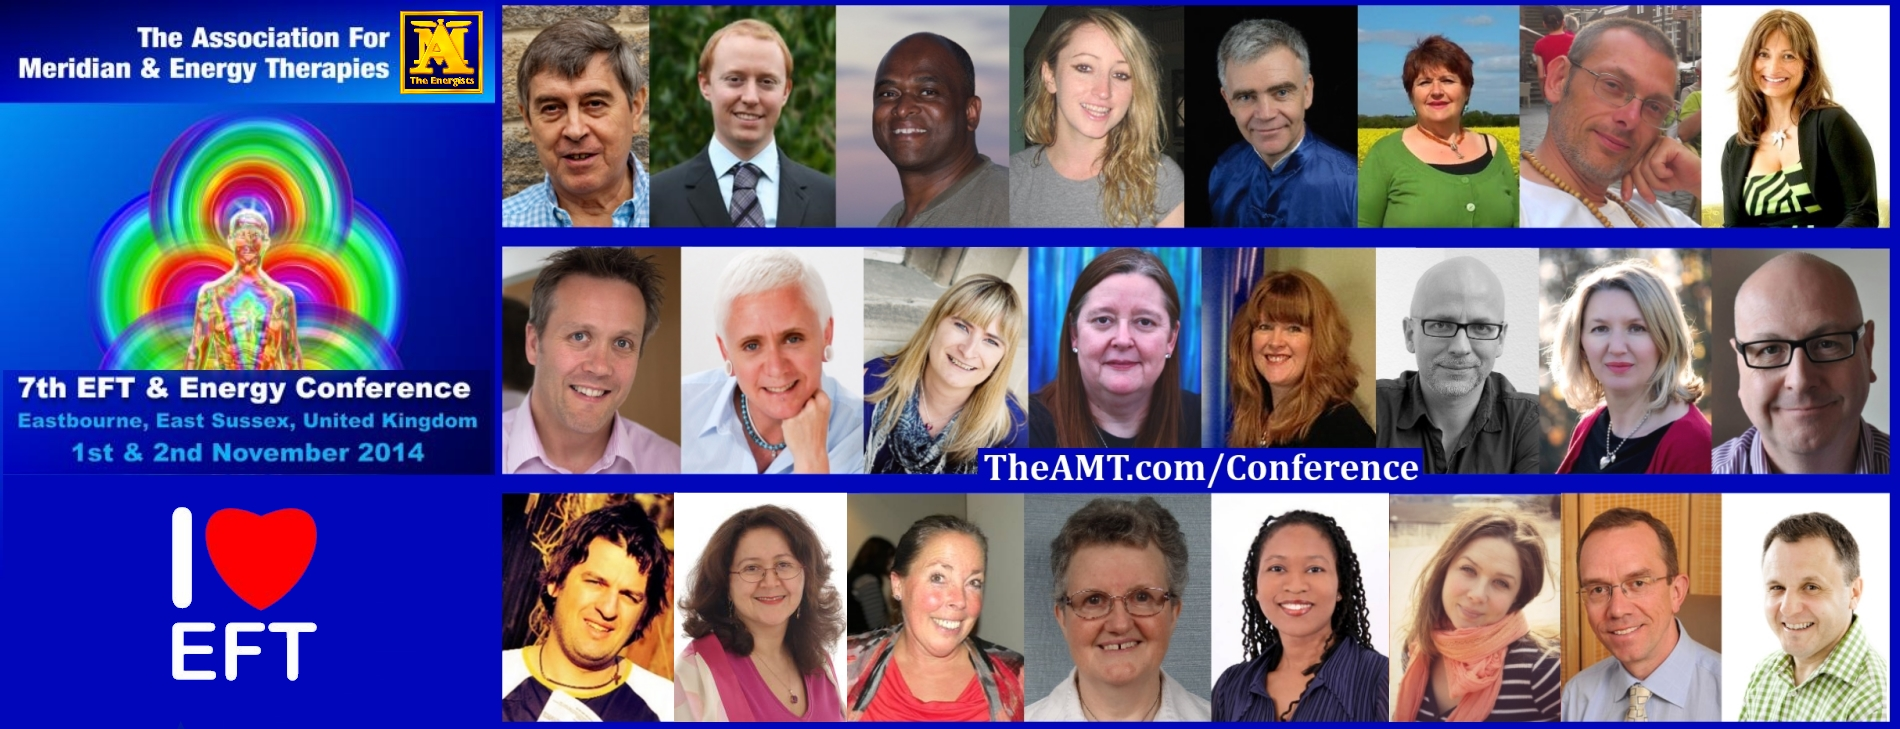 EFT & Energy Conference 2014 Presenters